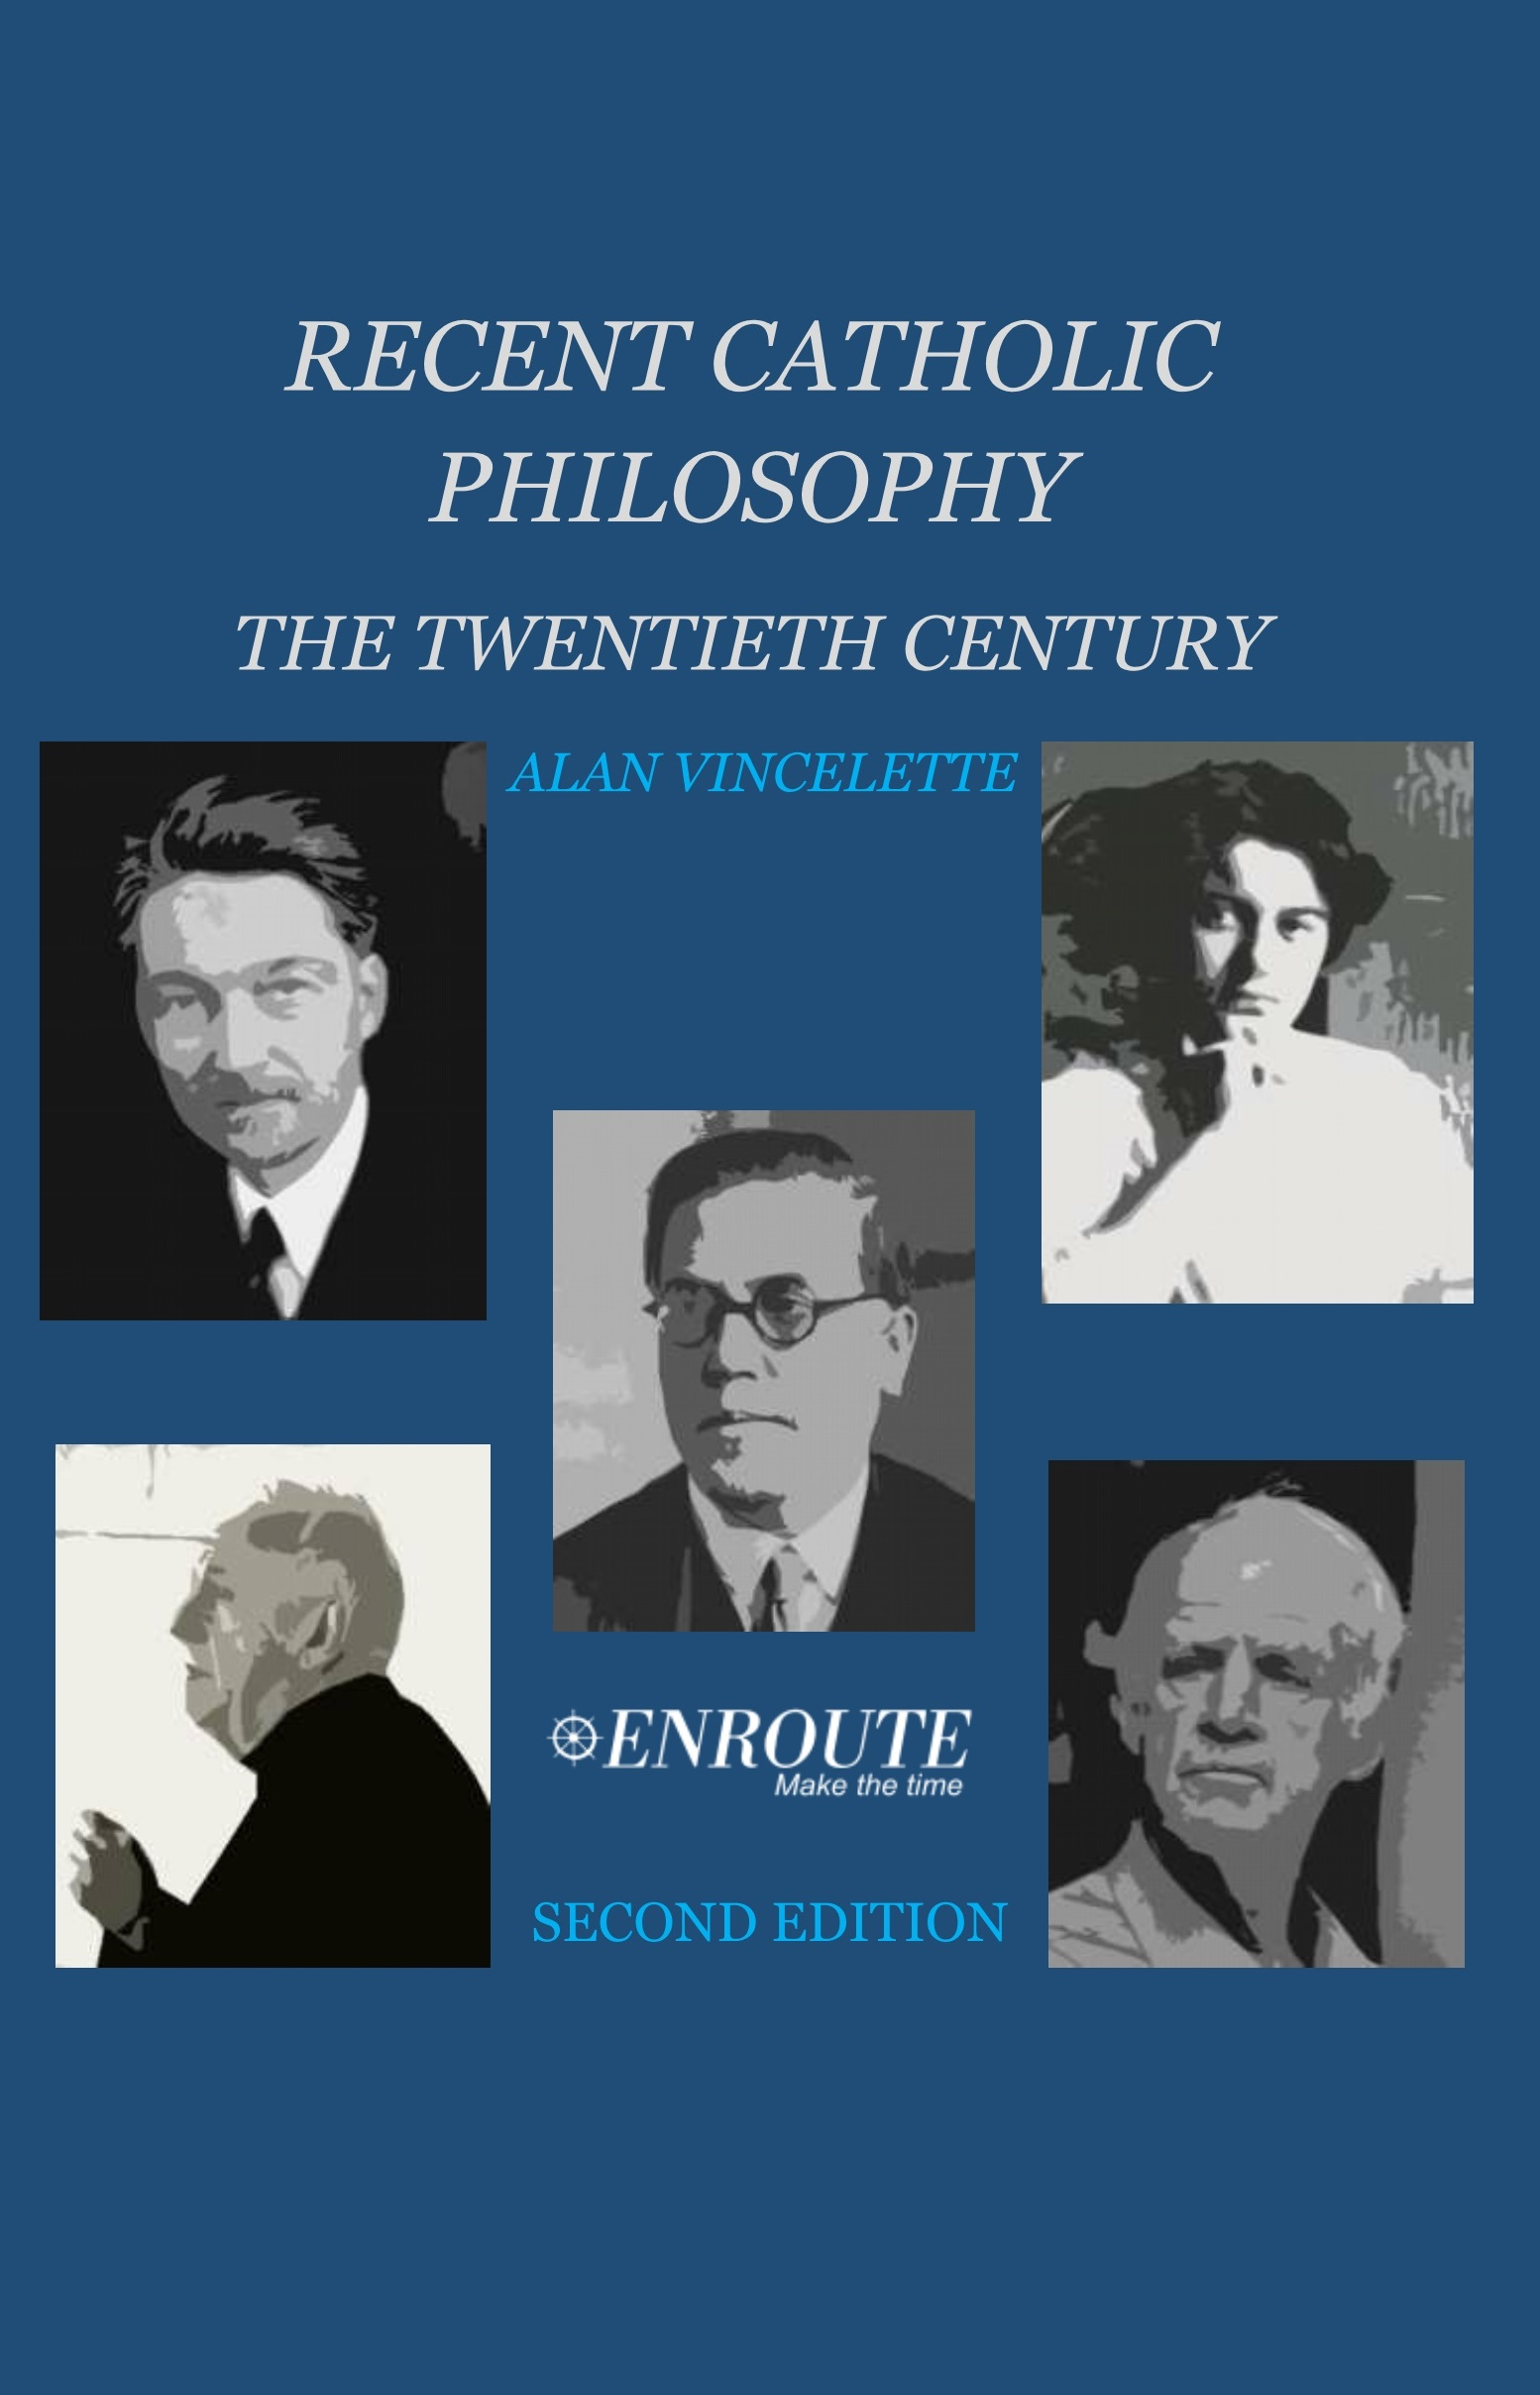 Recent Catholic Philosophy: The Twentieth Century